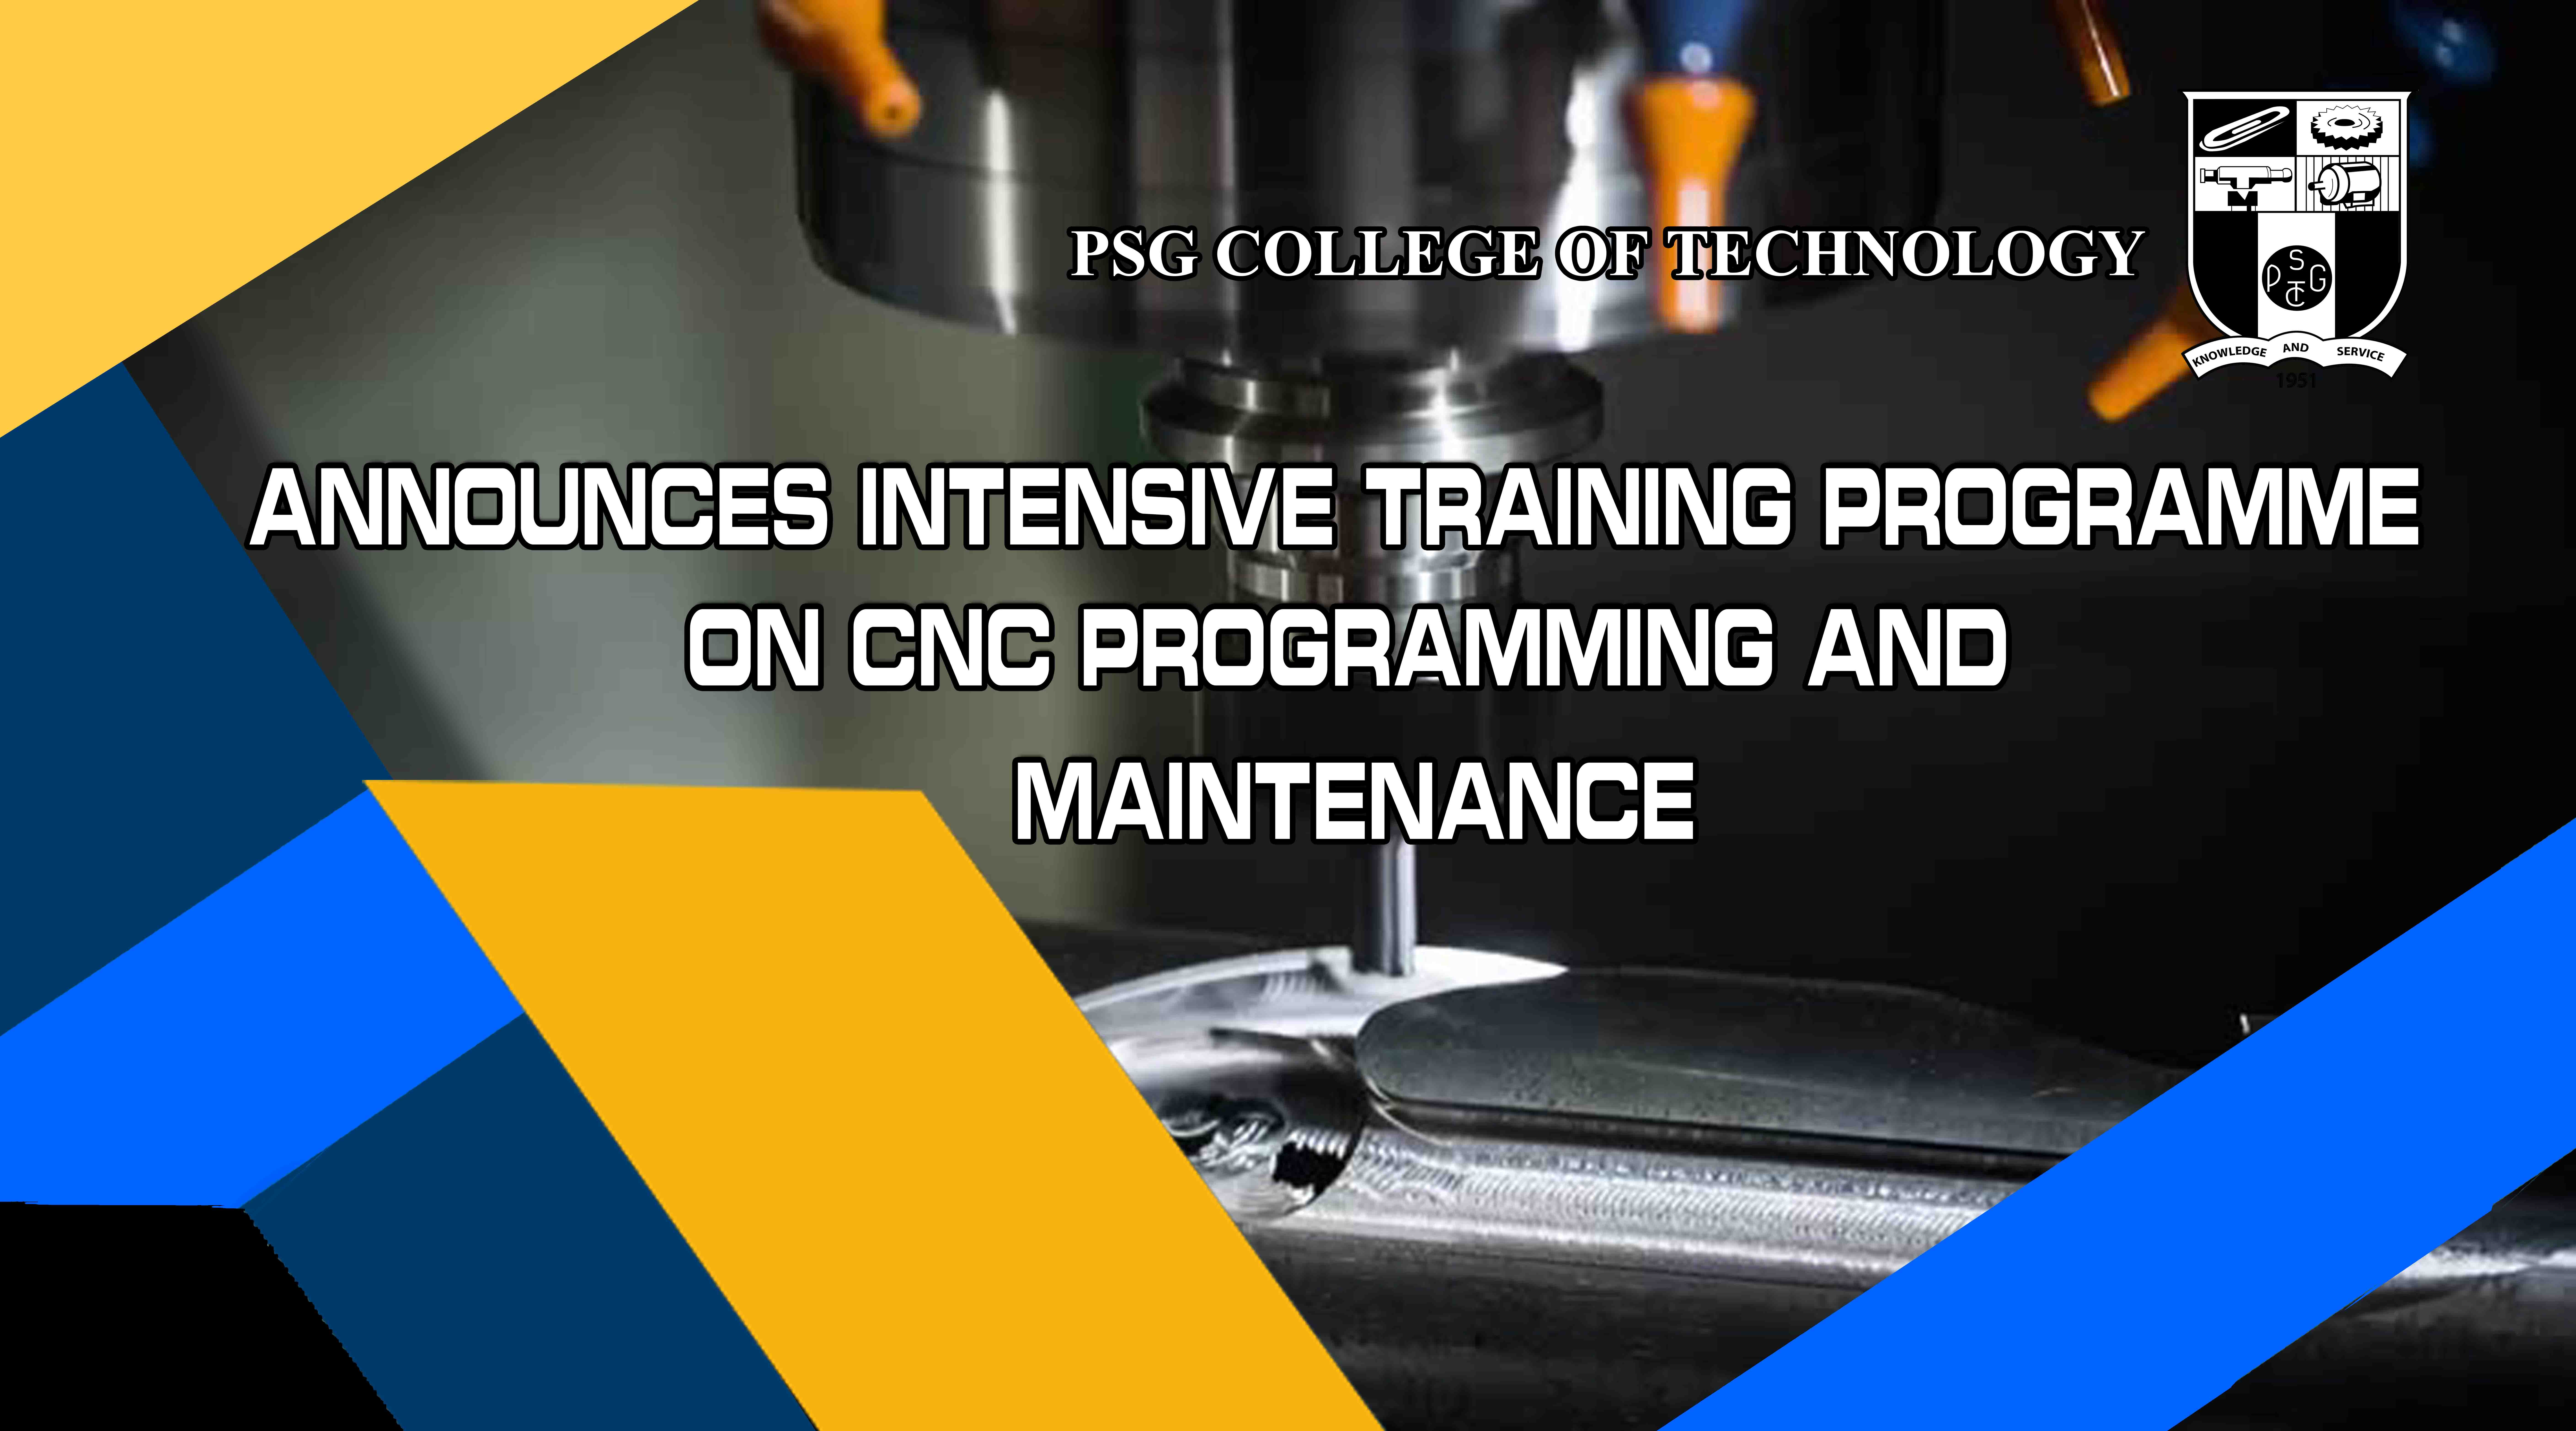 Book Training Programme On CNC PROGRAMMING AND MAINTENANCE